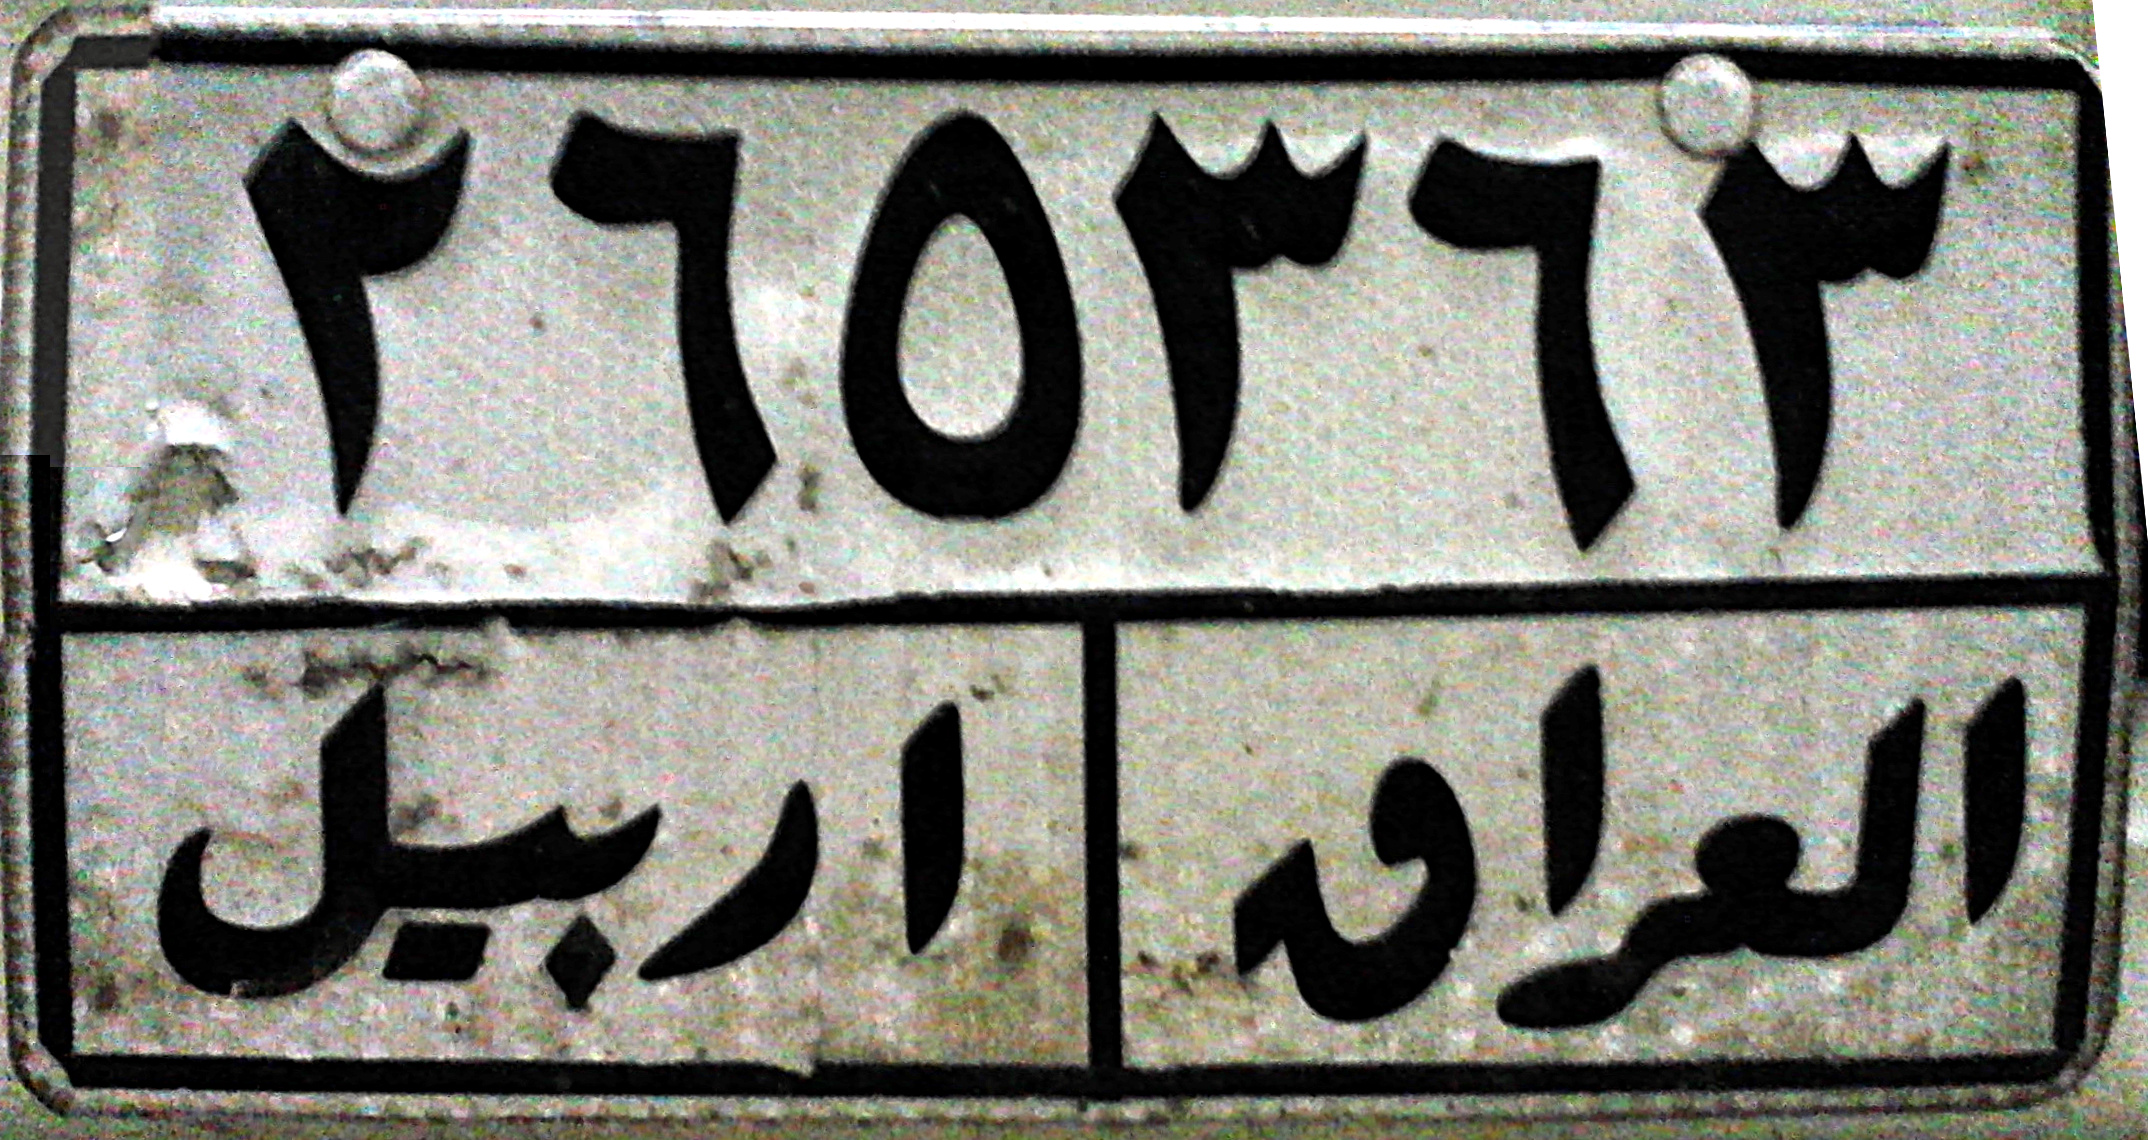 File:Erbil Iraq number plate (Private vehicle).jpg - Wikimedia Commons